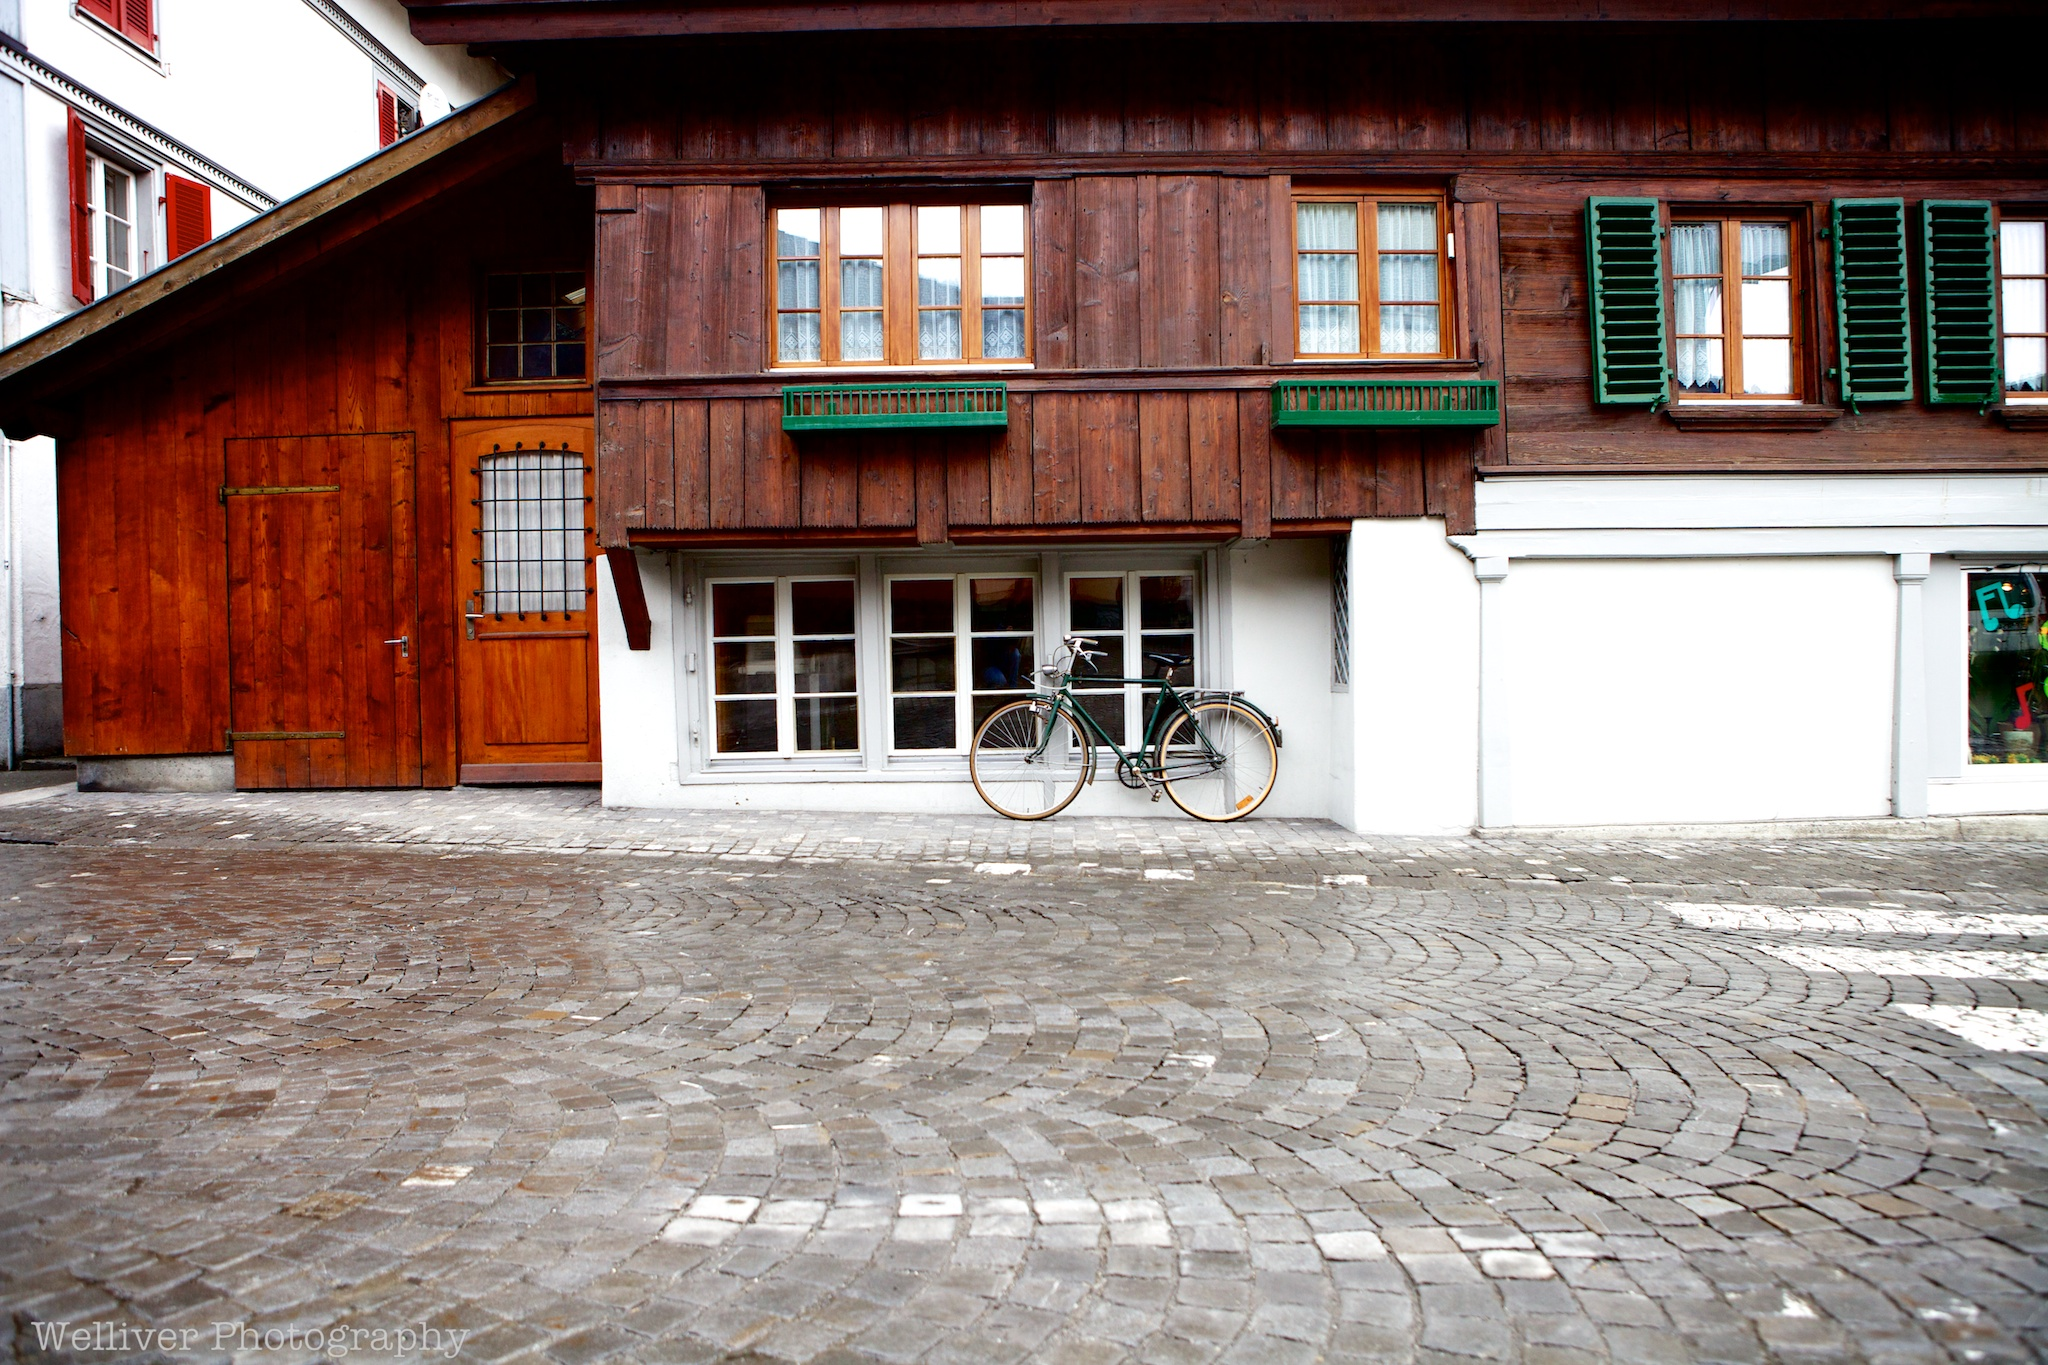 Bicycle. Interlaken, Switzerland.